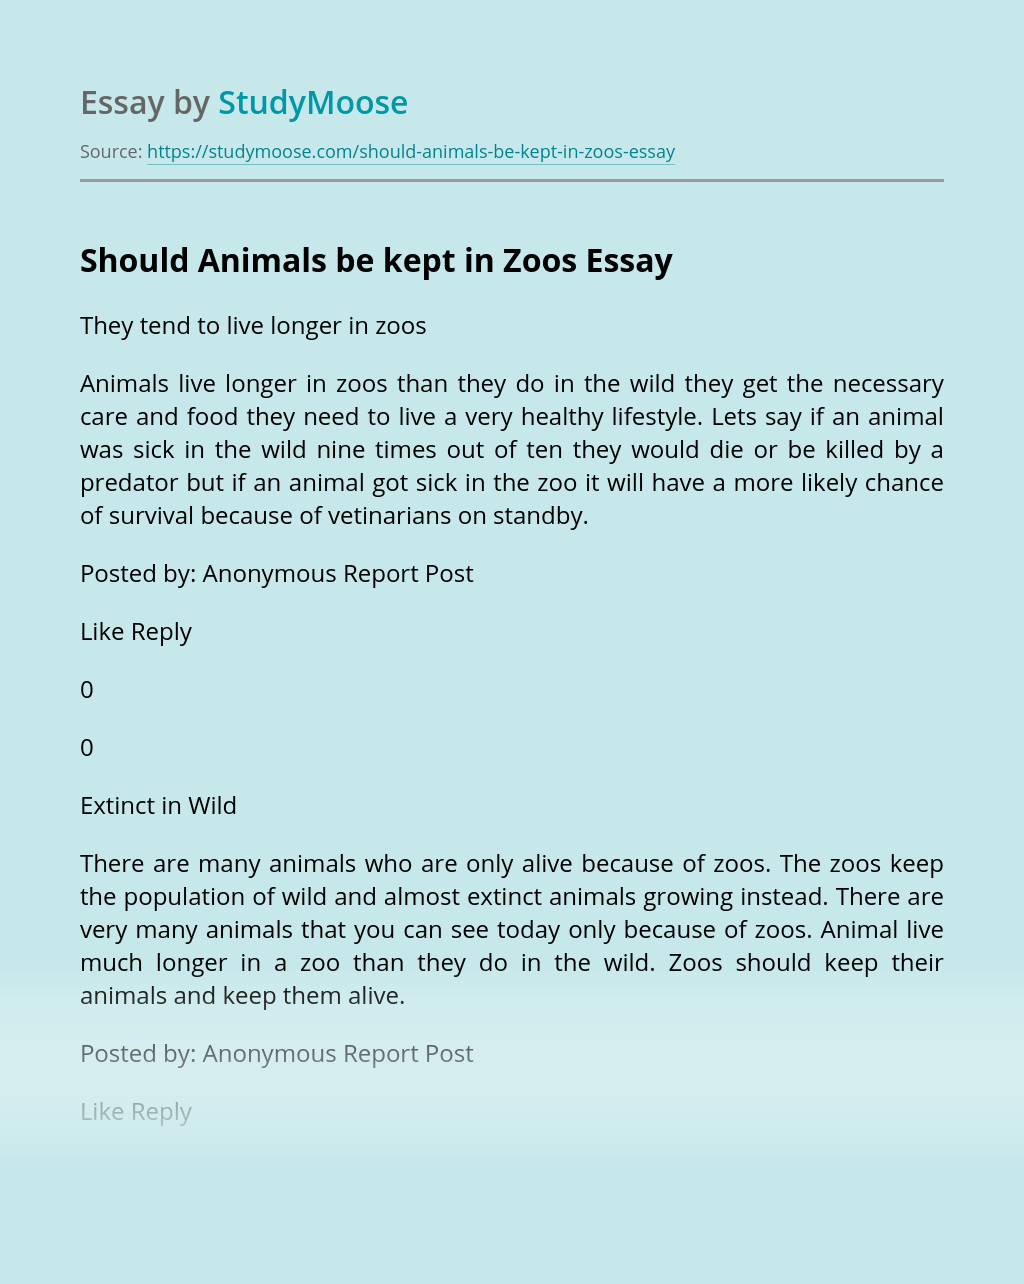 Should Animals be kept in Zoos